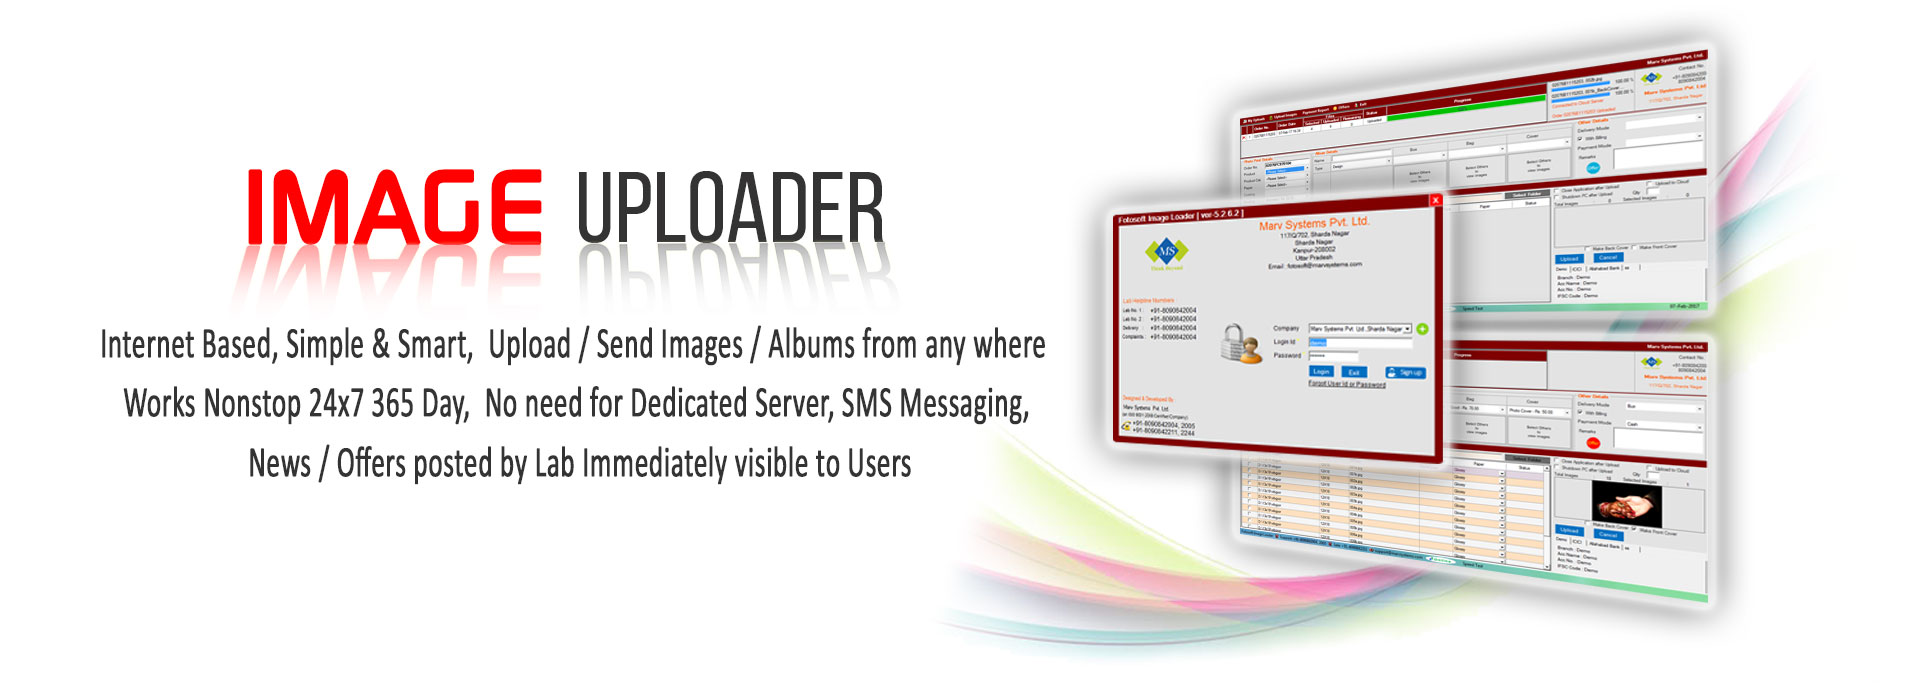 Fotosoft : Image Uploading Software